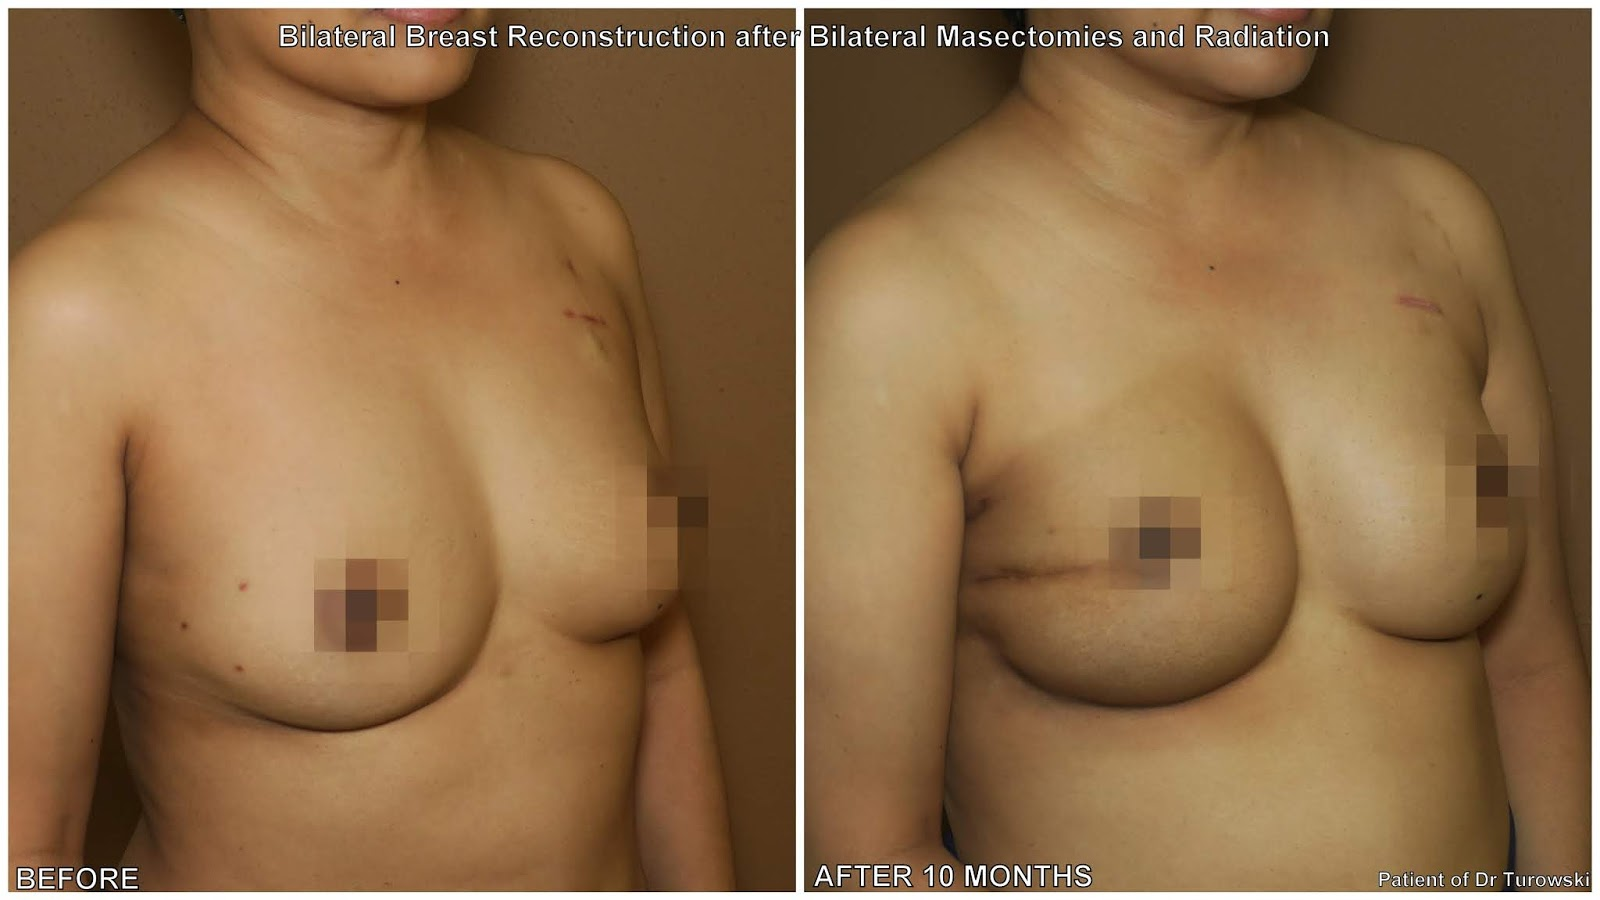 Opinion, actual, breast reconstruction after radiation for that